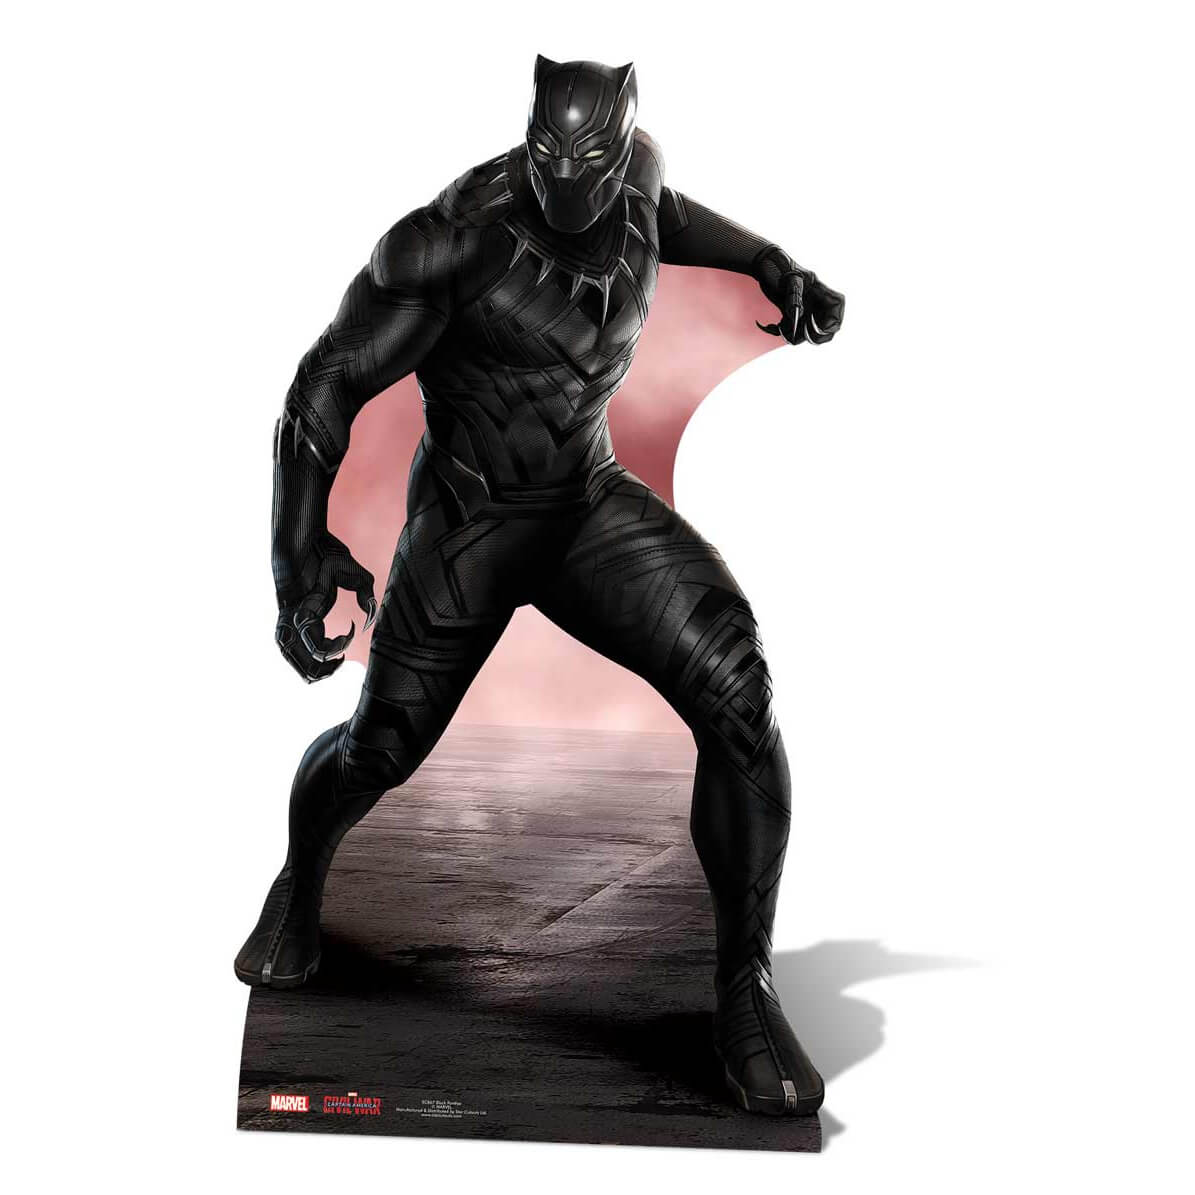 Disney Marvel Captain America: Civil War Black Panther Over Size Cut Out